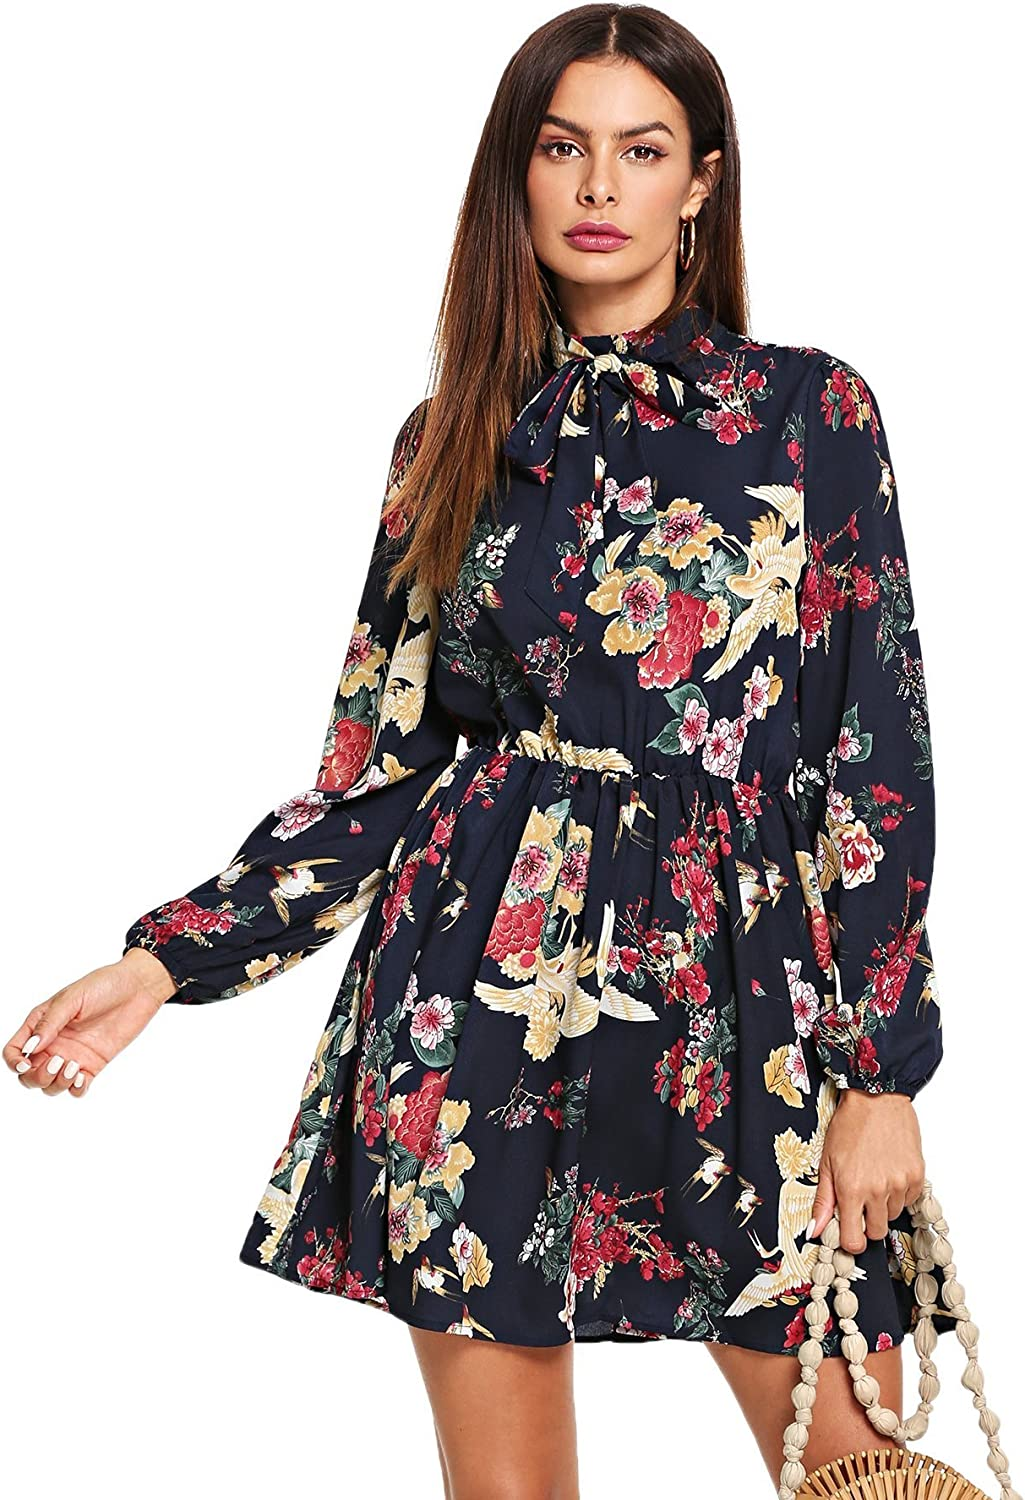 Floerns Women's Tie Neck Flower Print Long Sleeve Short Dress